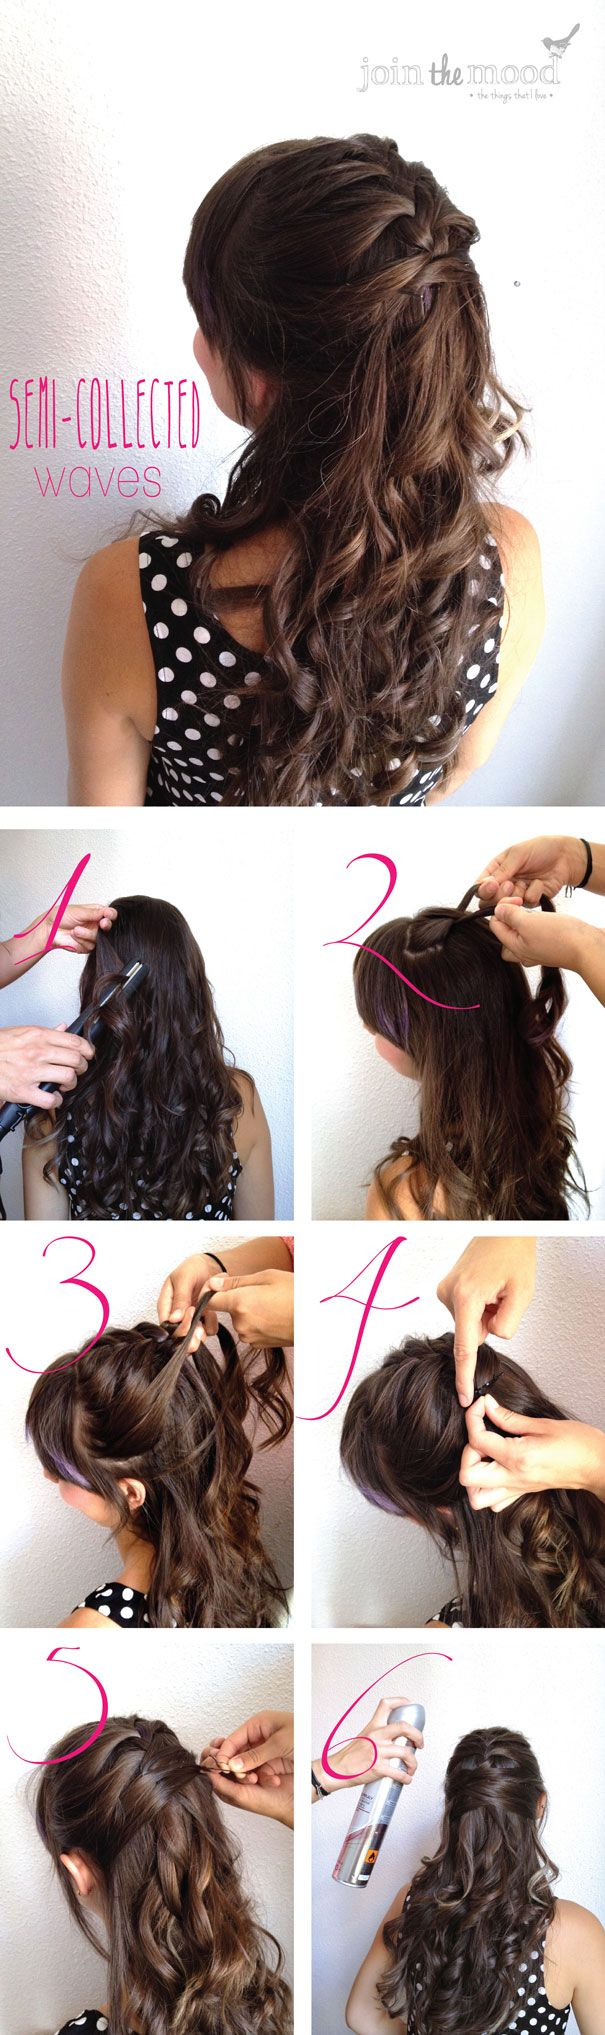 best hair images on pinterest hairstyle ideas hair cut and